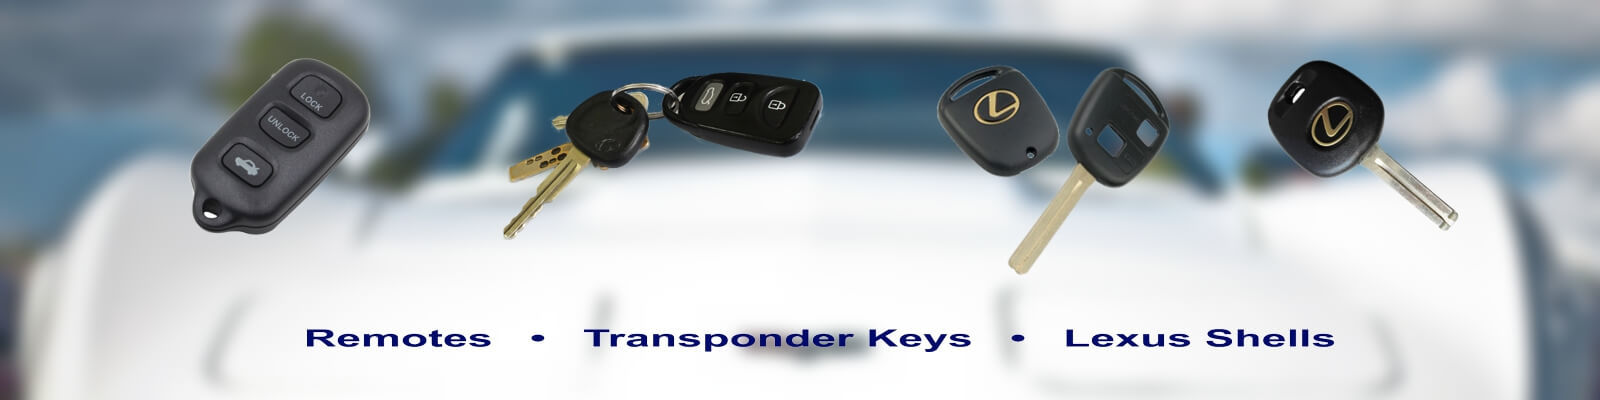 key keys lexus your replace